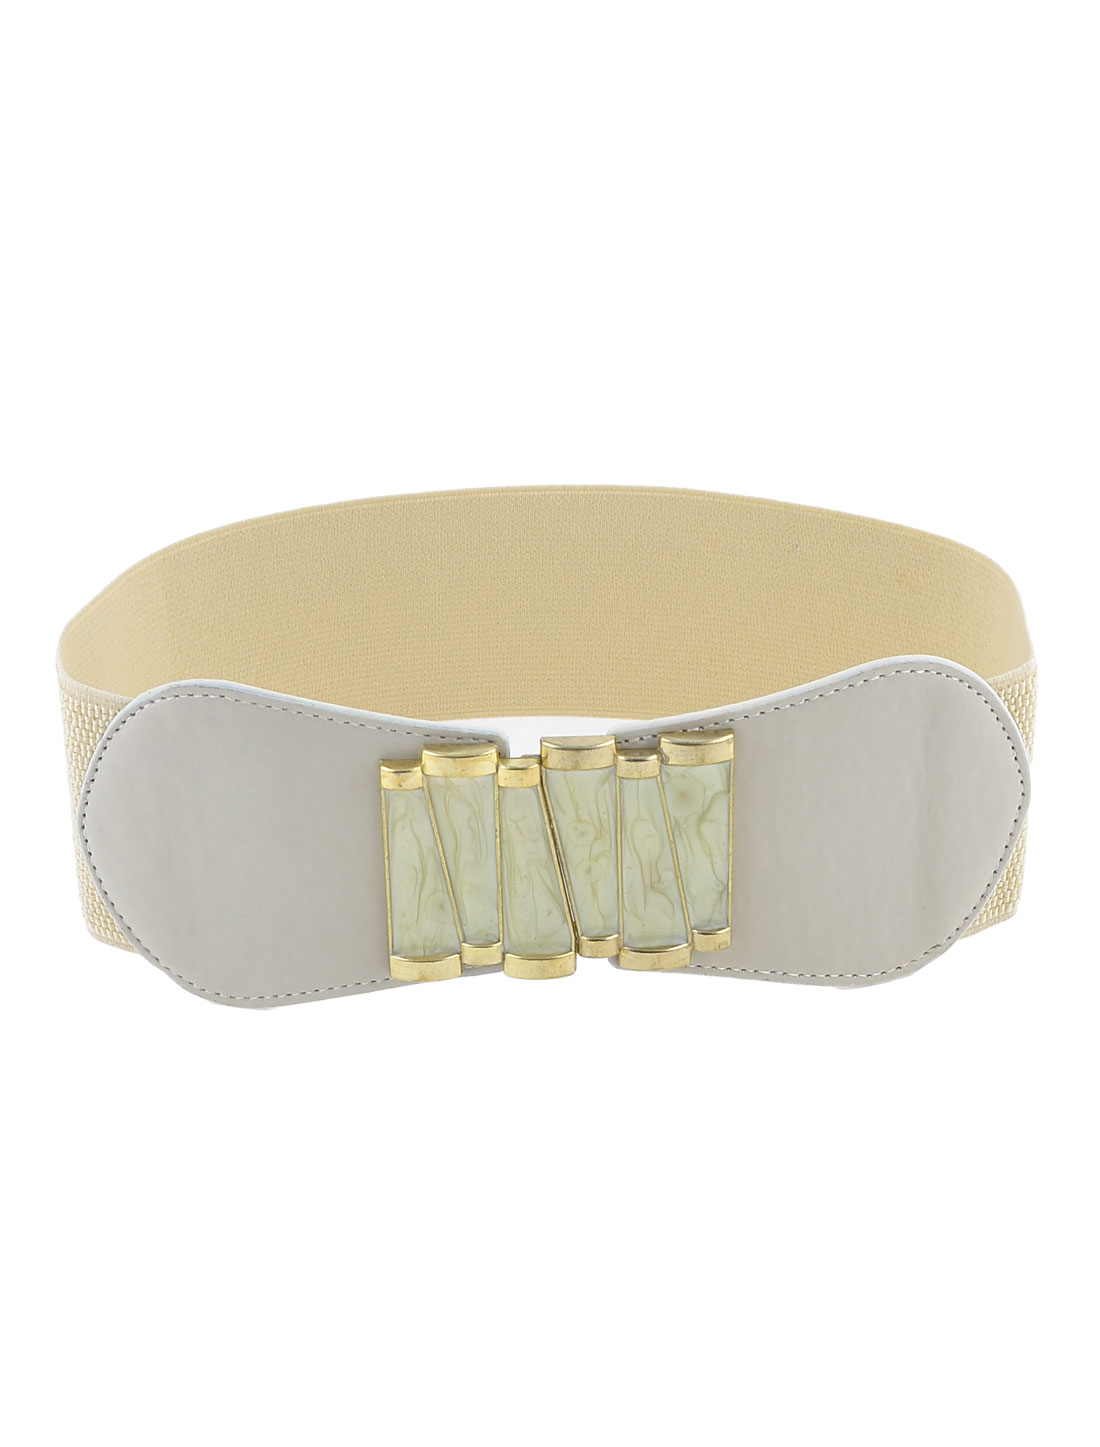 Ladies Swirl Flourish Pattern Metal Interlock Buckle Elastic Waist Belt Beige